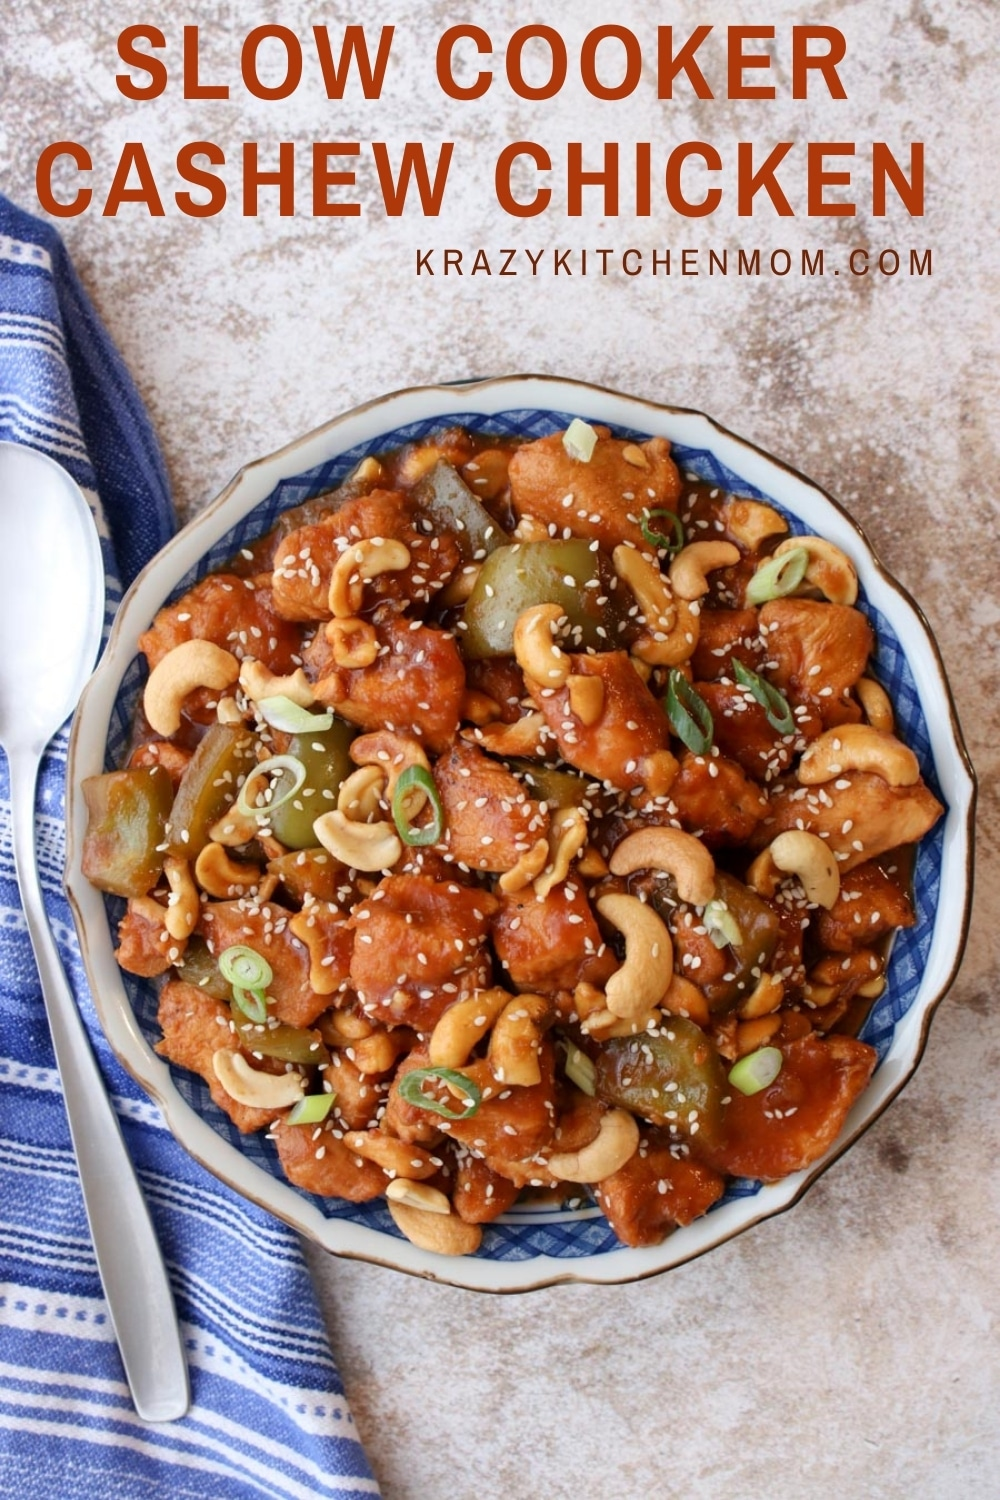 Move over take-out! Slow Cooker Cashew Chicken is the new favorite in town. It's tender, tangy, sweet, and spicy. It has something for everyone. I promise this is one of the best recipes you'll make in your slow cooker all year. via @krazykitchenmom